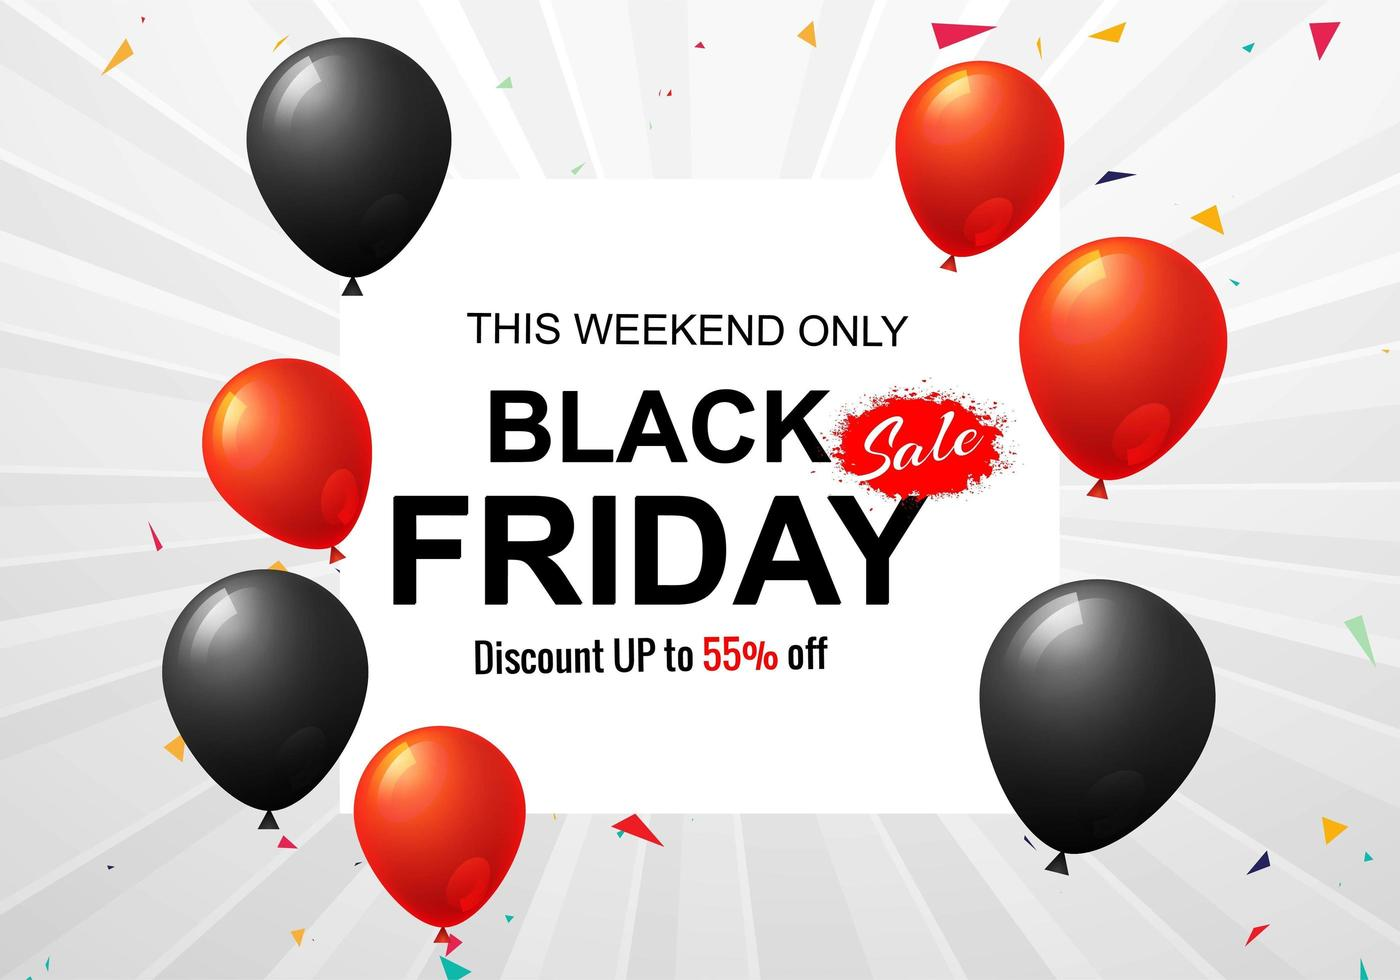 Black Friday Sale Poster for Balloons and Confetti Background vector